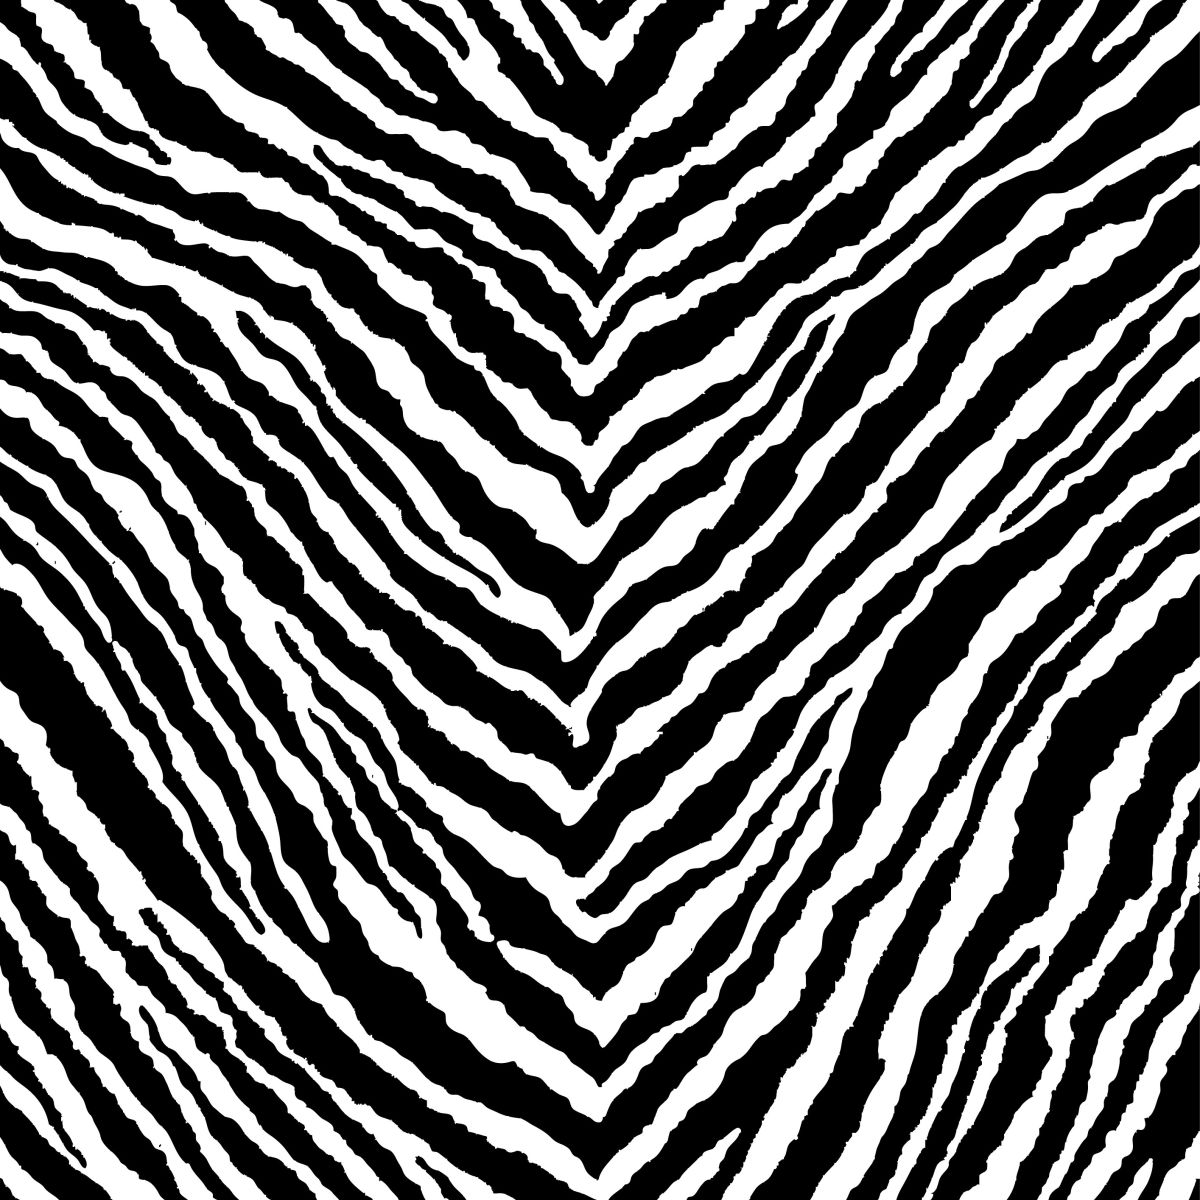 Artek Zebra Collection